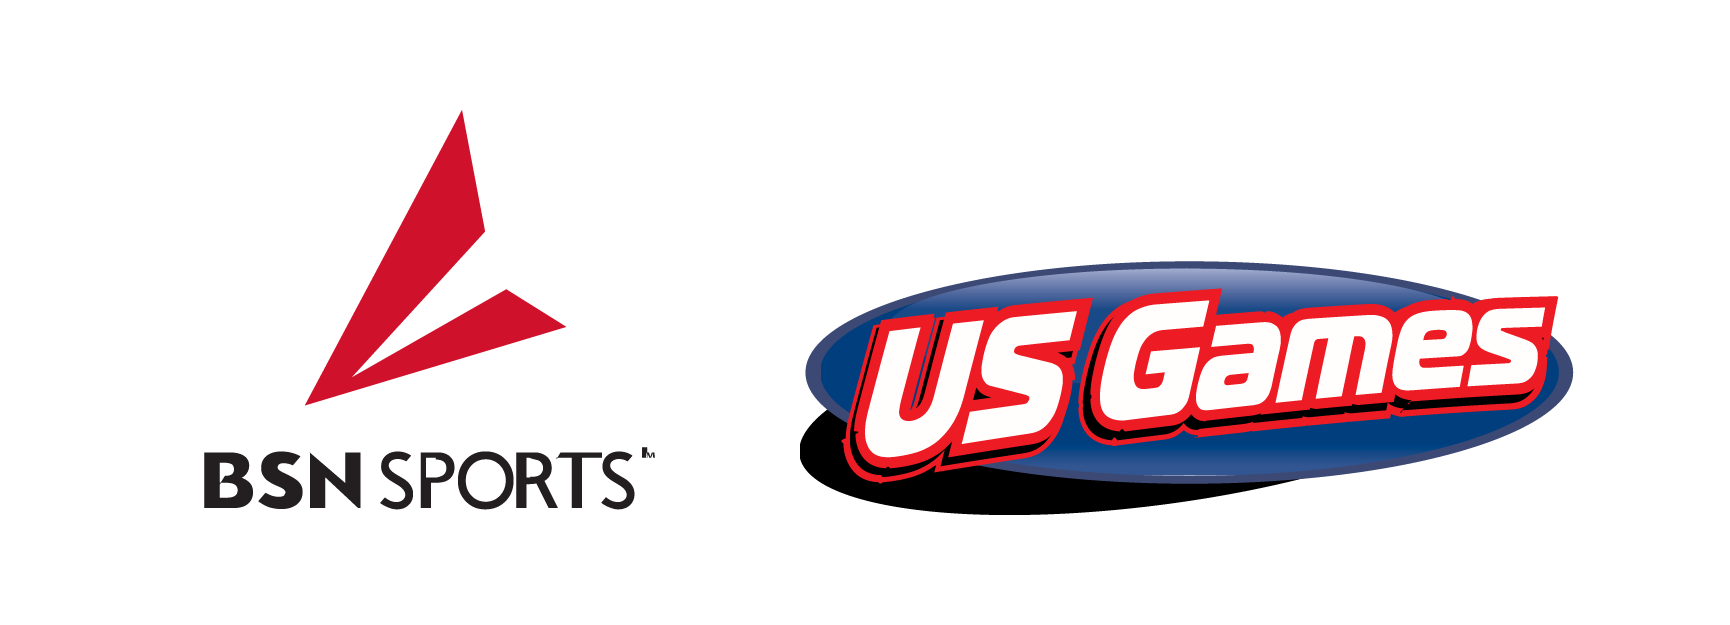 BSN Sports & US Games